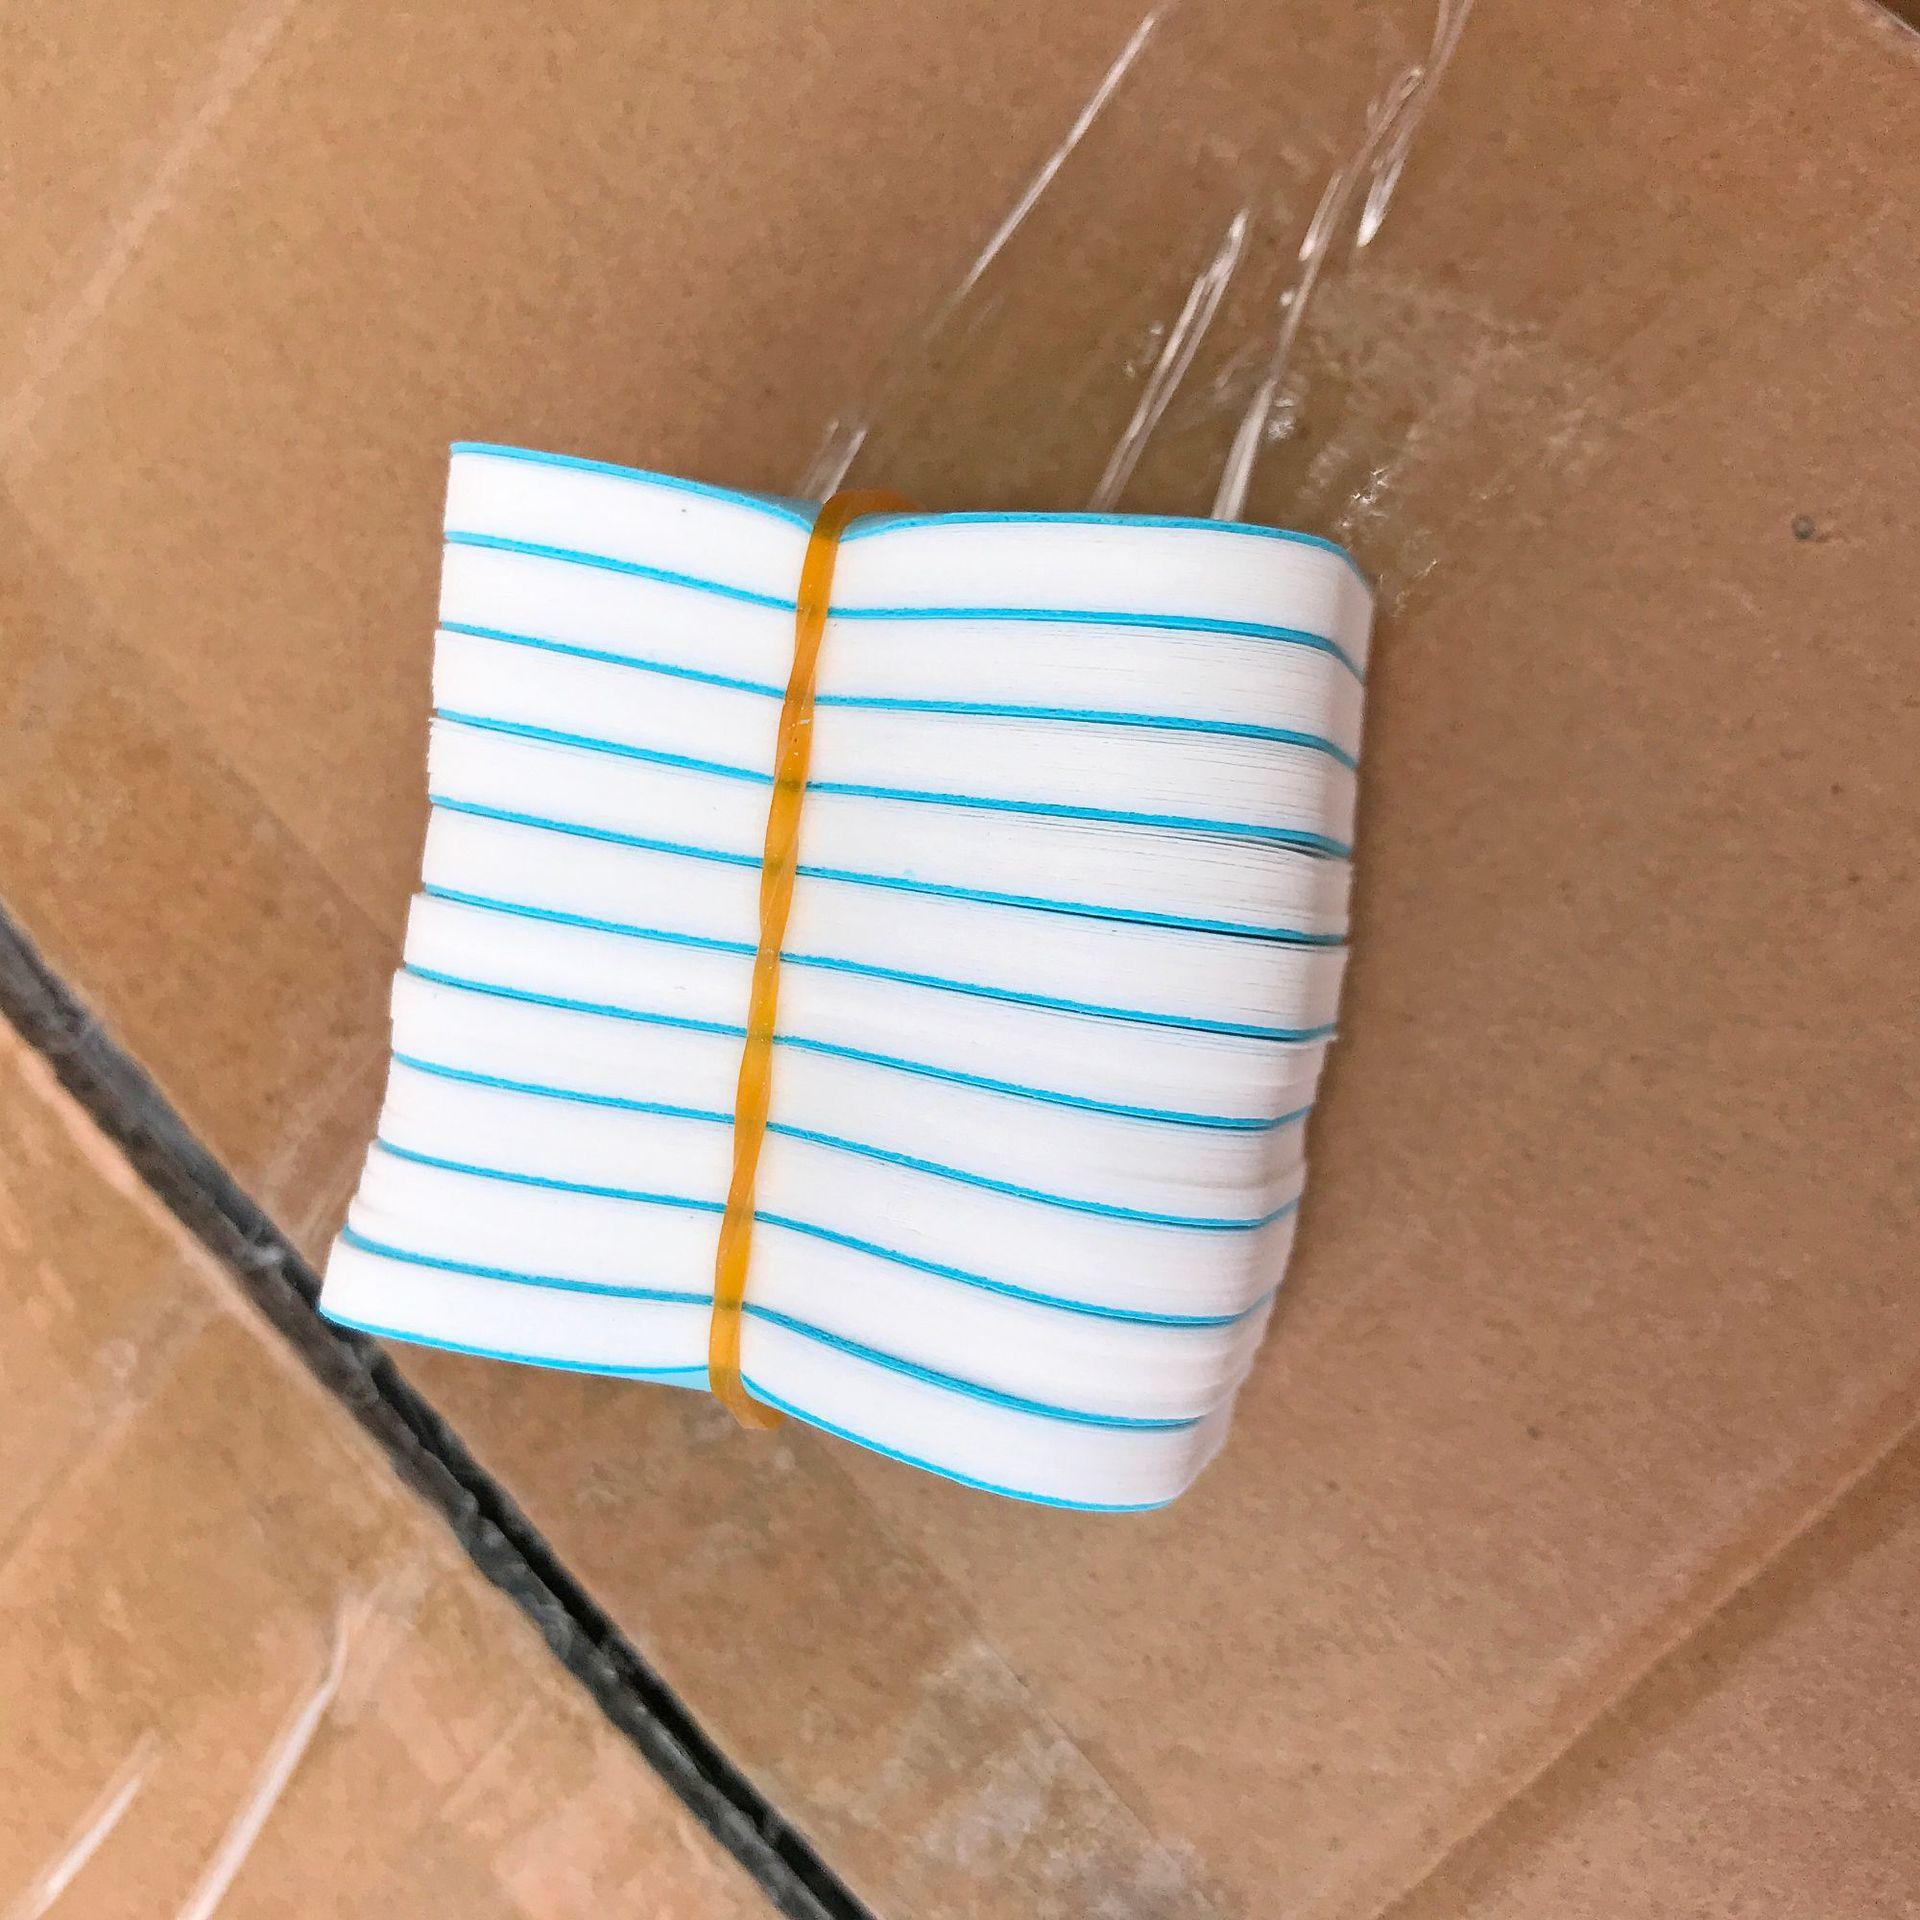 Hot sell easy foaming with refill private label disposable sheet soap paper slice pocket soap